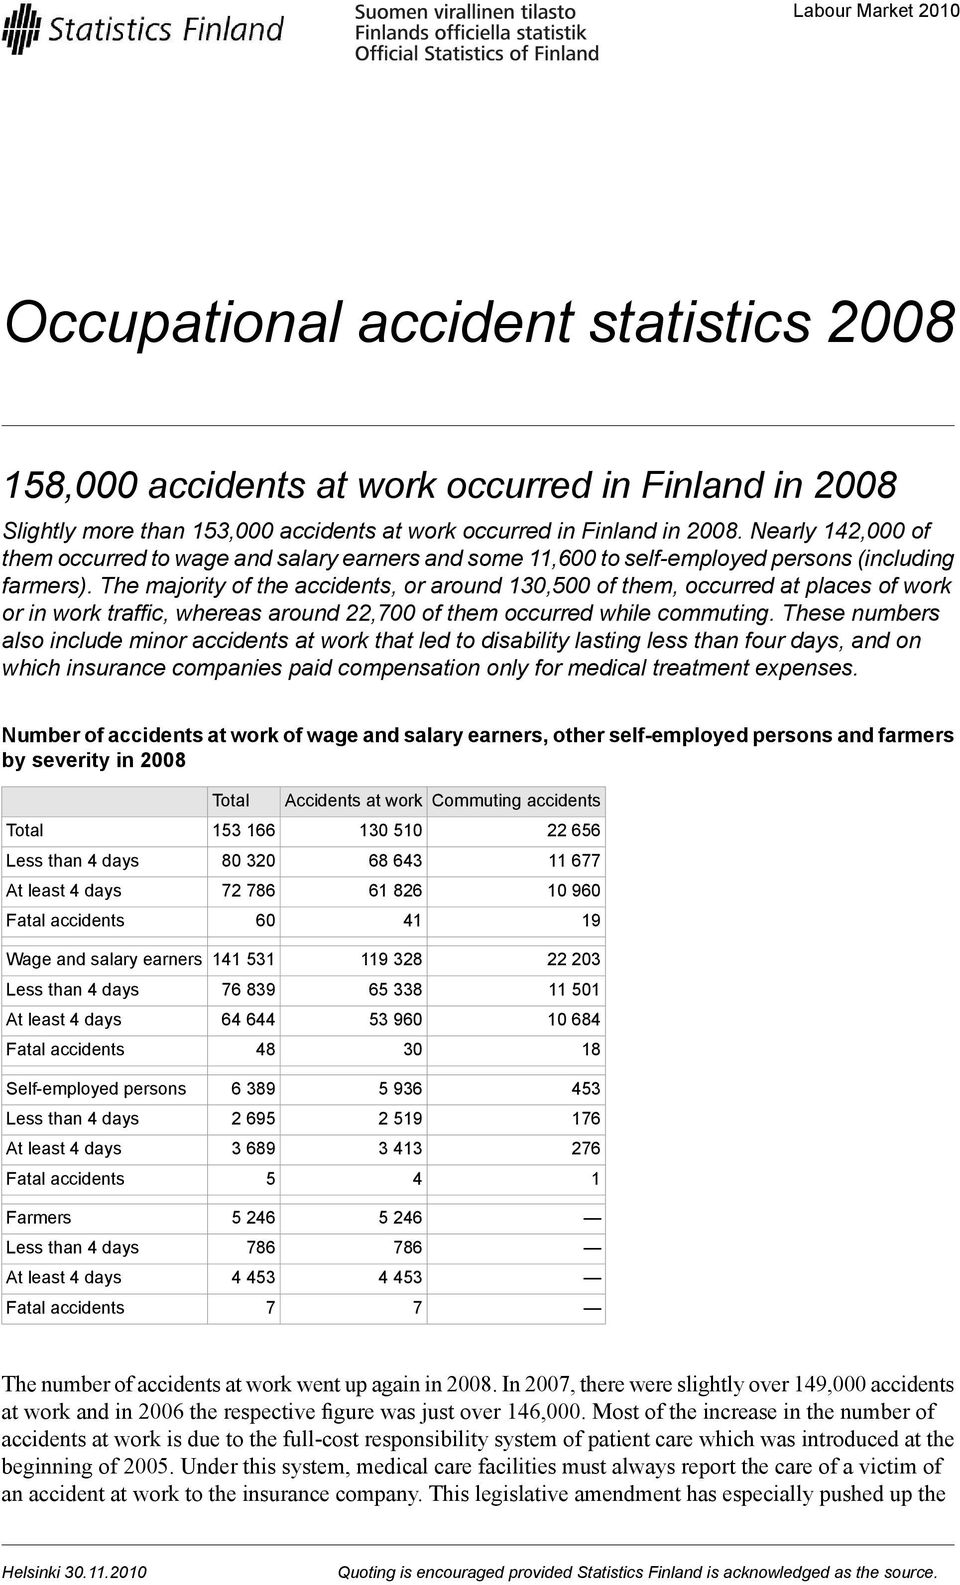 The majority of the accidents, or around 130,500 of them, occurred at places of work or in work traffic, whereas around 22,700 of them occurred while commuting.